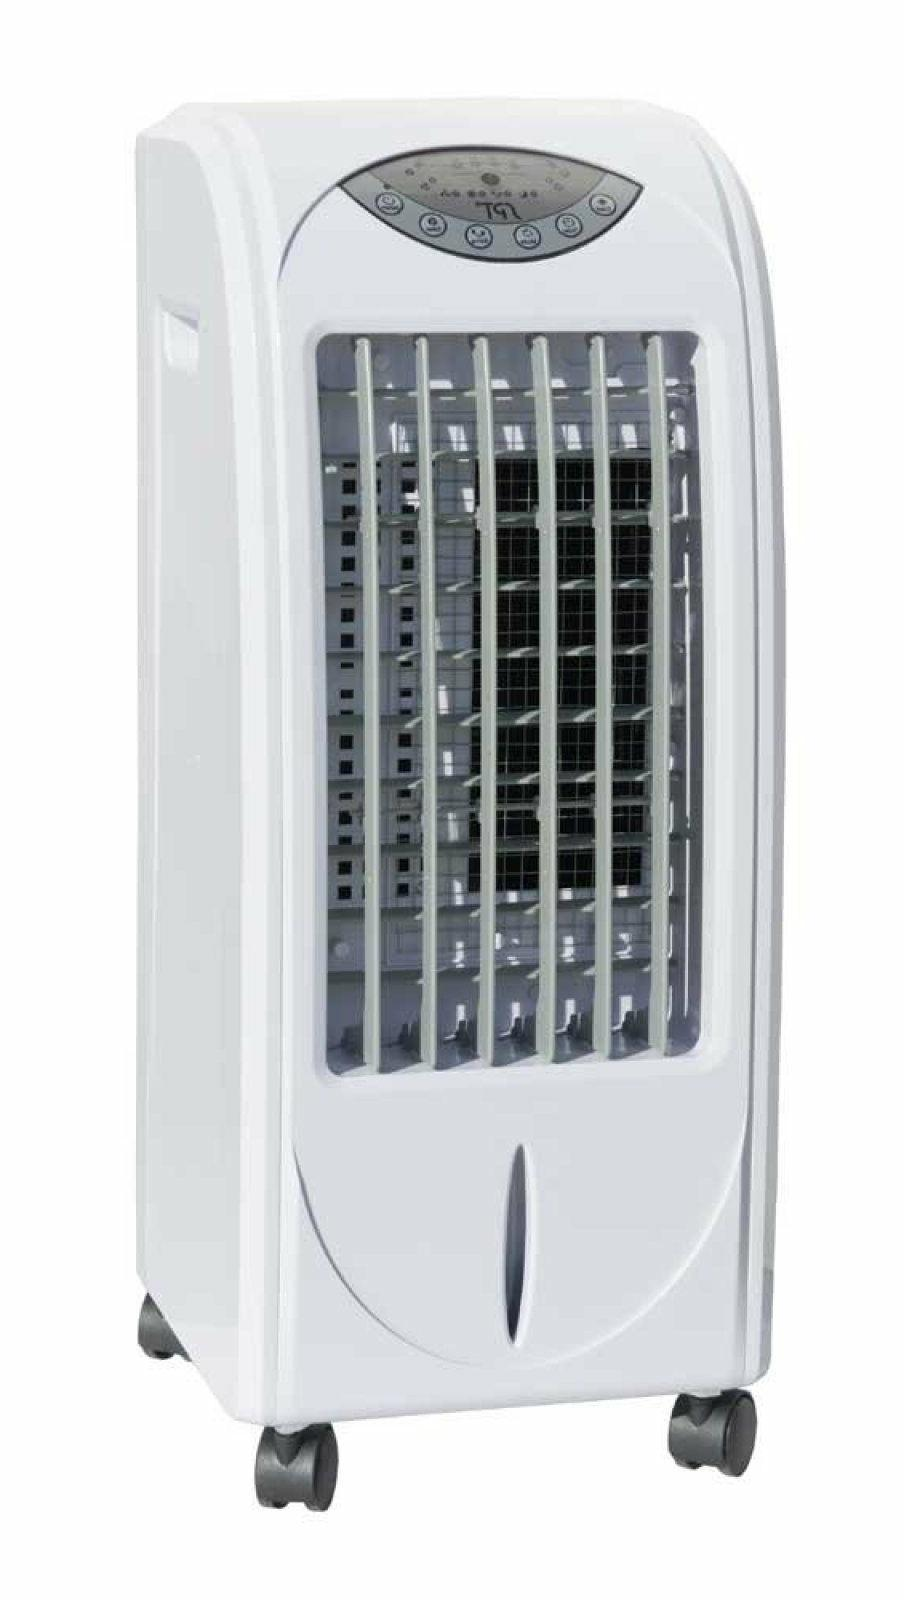 AC Automatic Air Conditioner Cooler System Portable Evaporat